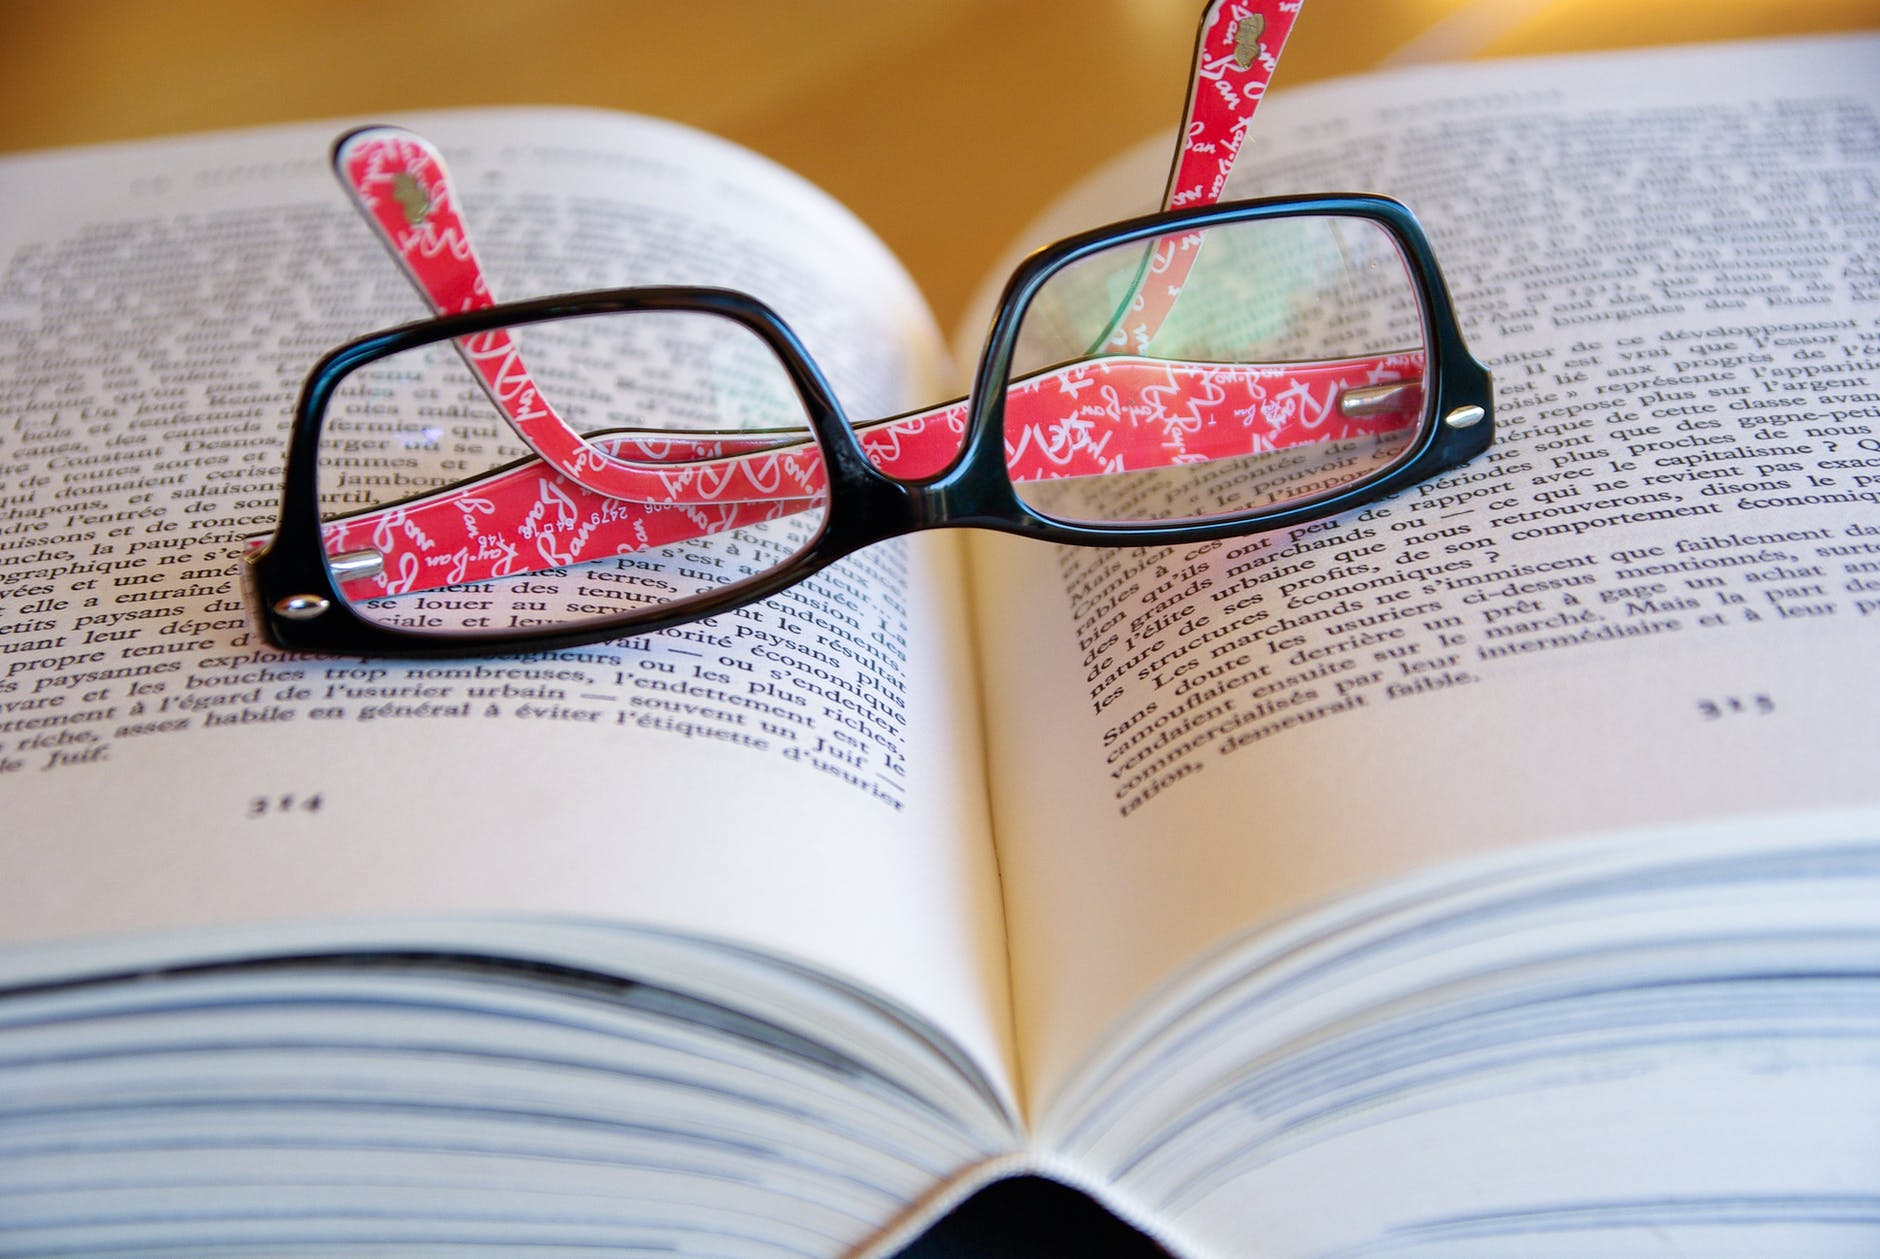 EnChroma Glasses placed at the top of a open book